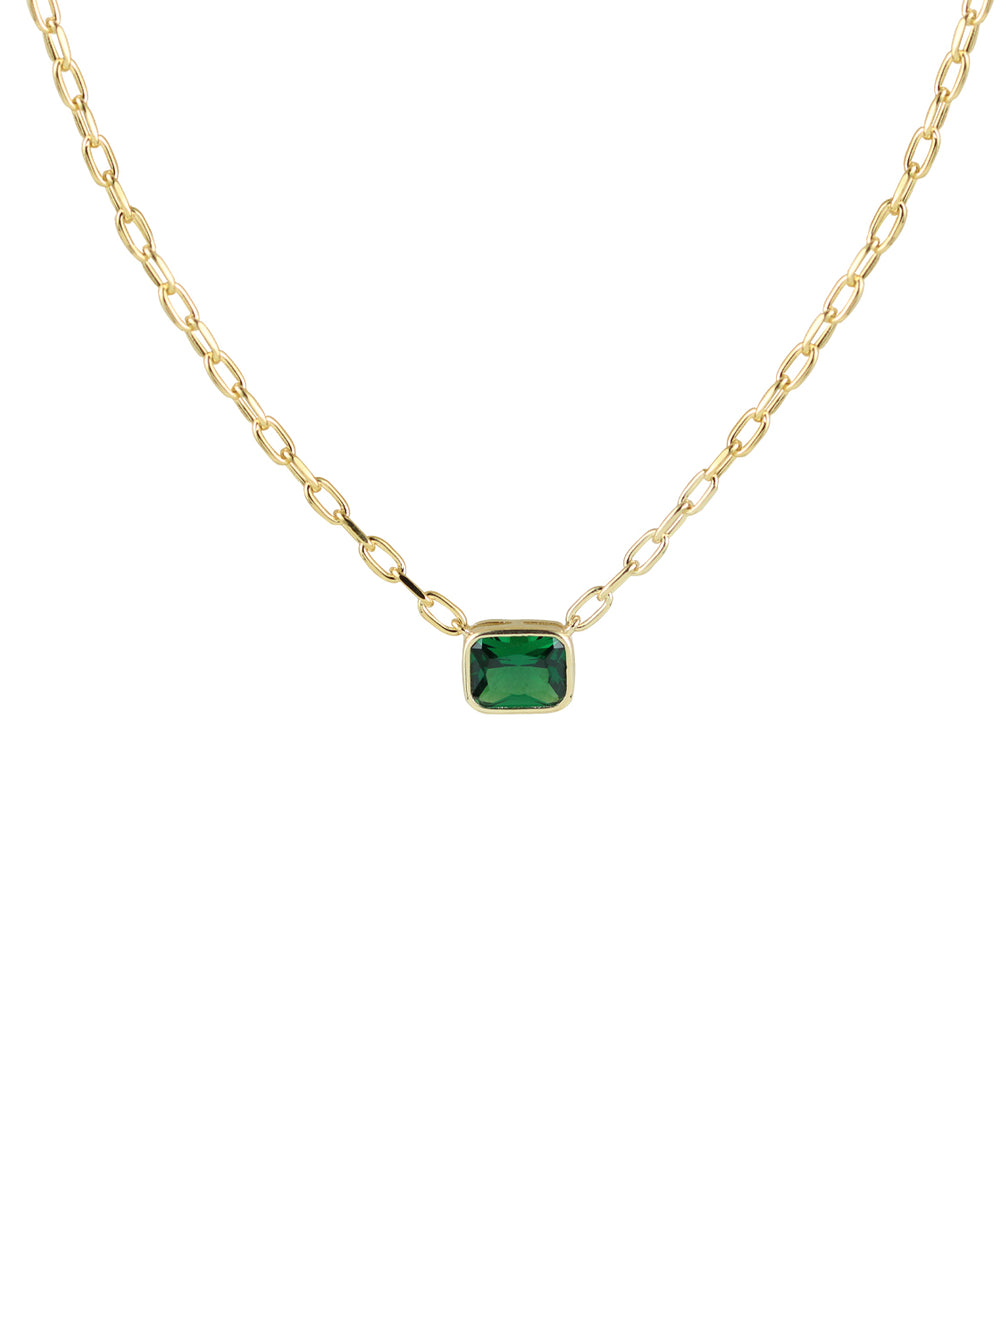 THE GREEN EMERALD REDA LINK NECKLACE (CHAPTER II BY GREG YÜNA X THE M JEWELERS)